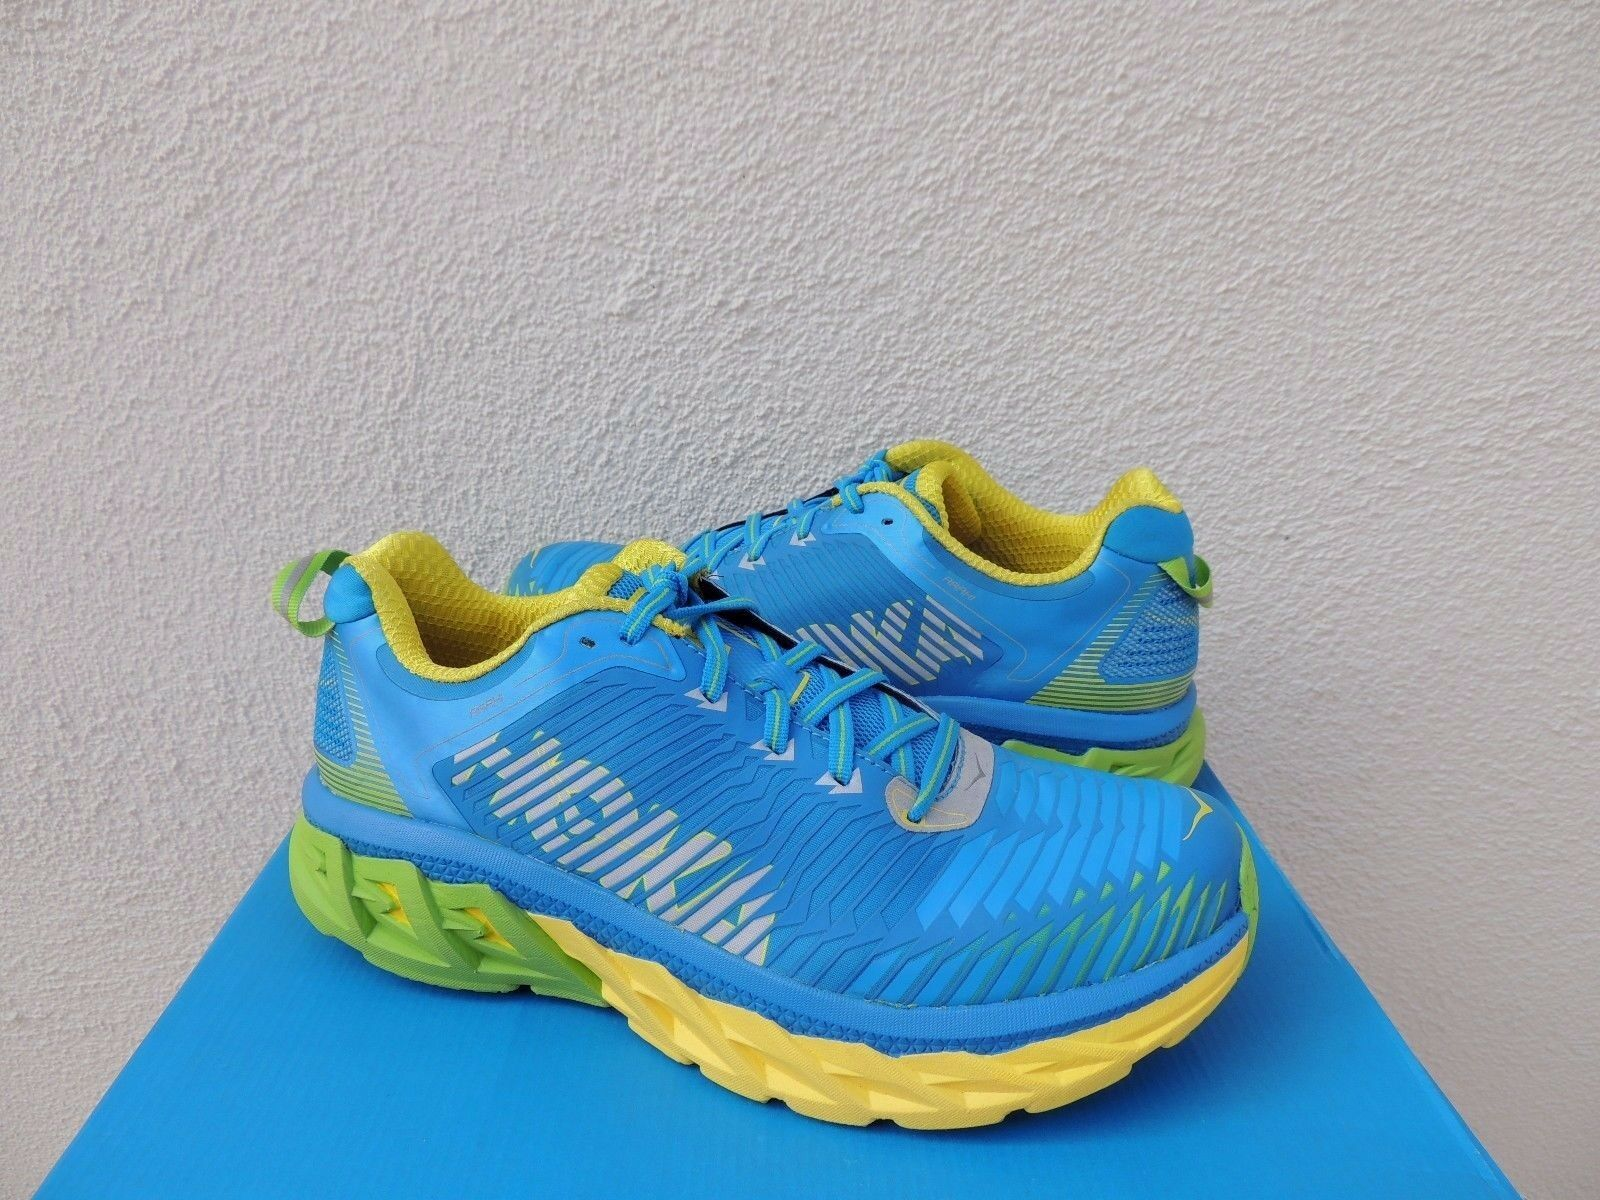 HOKA ONE ONE ARAHI BLU ASTER/ YELLOW RUNNING SCARPE, Uomo US 9/ EUR 42 2/3 ~ NEW